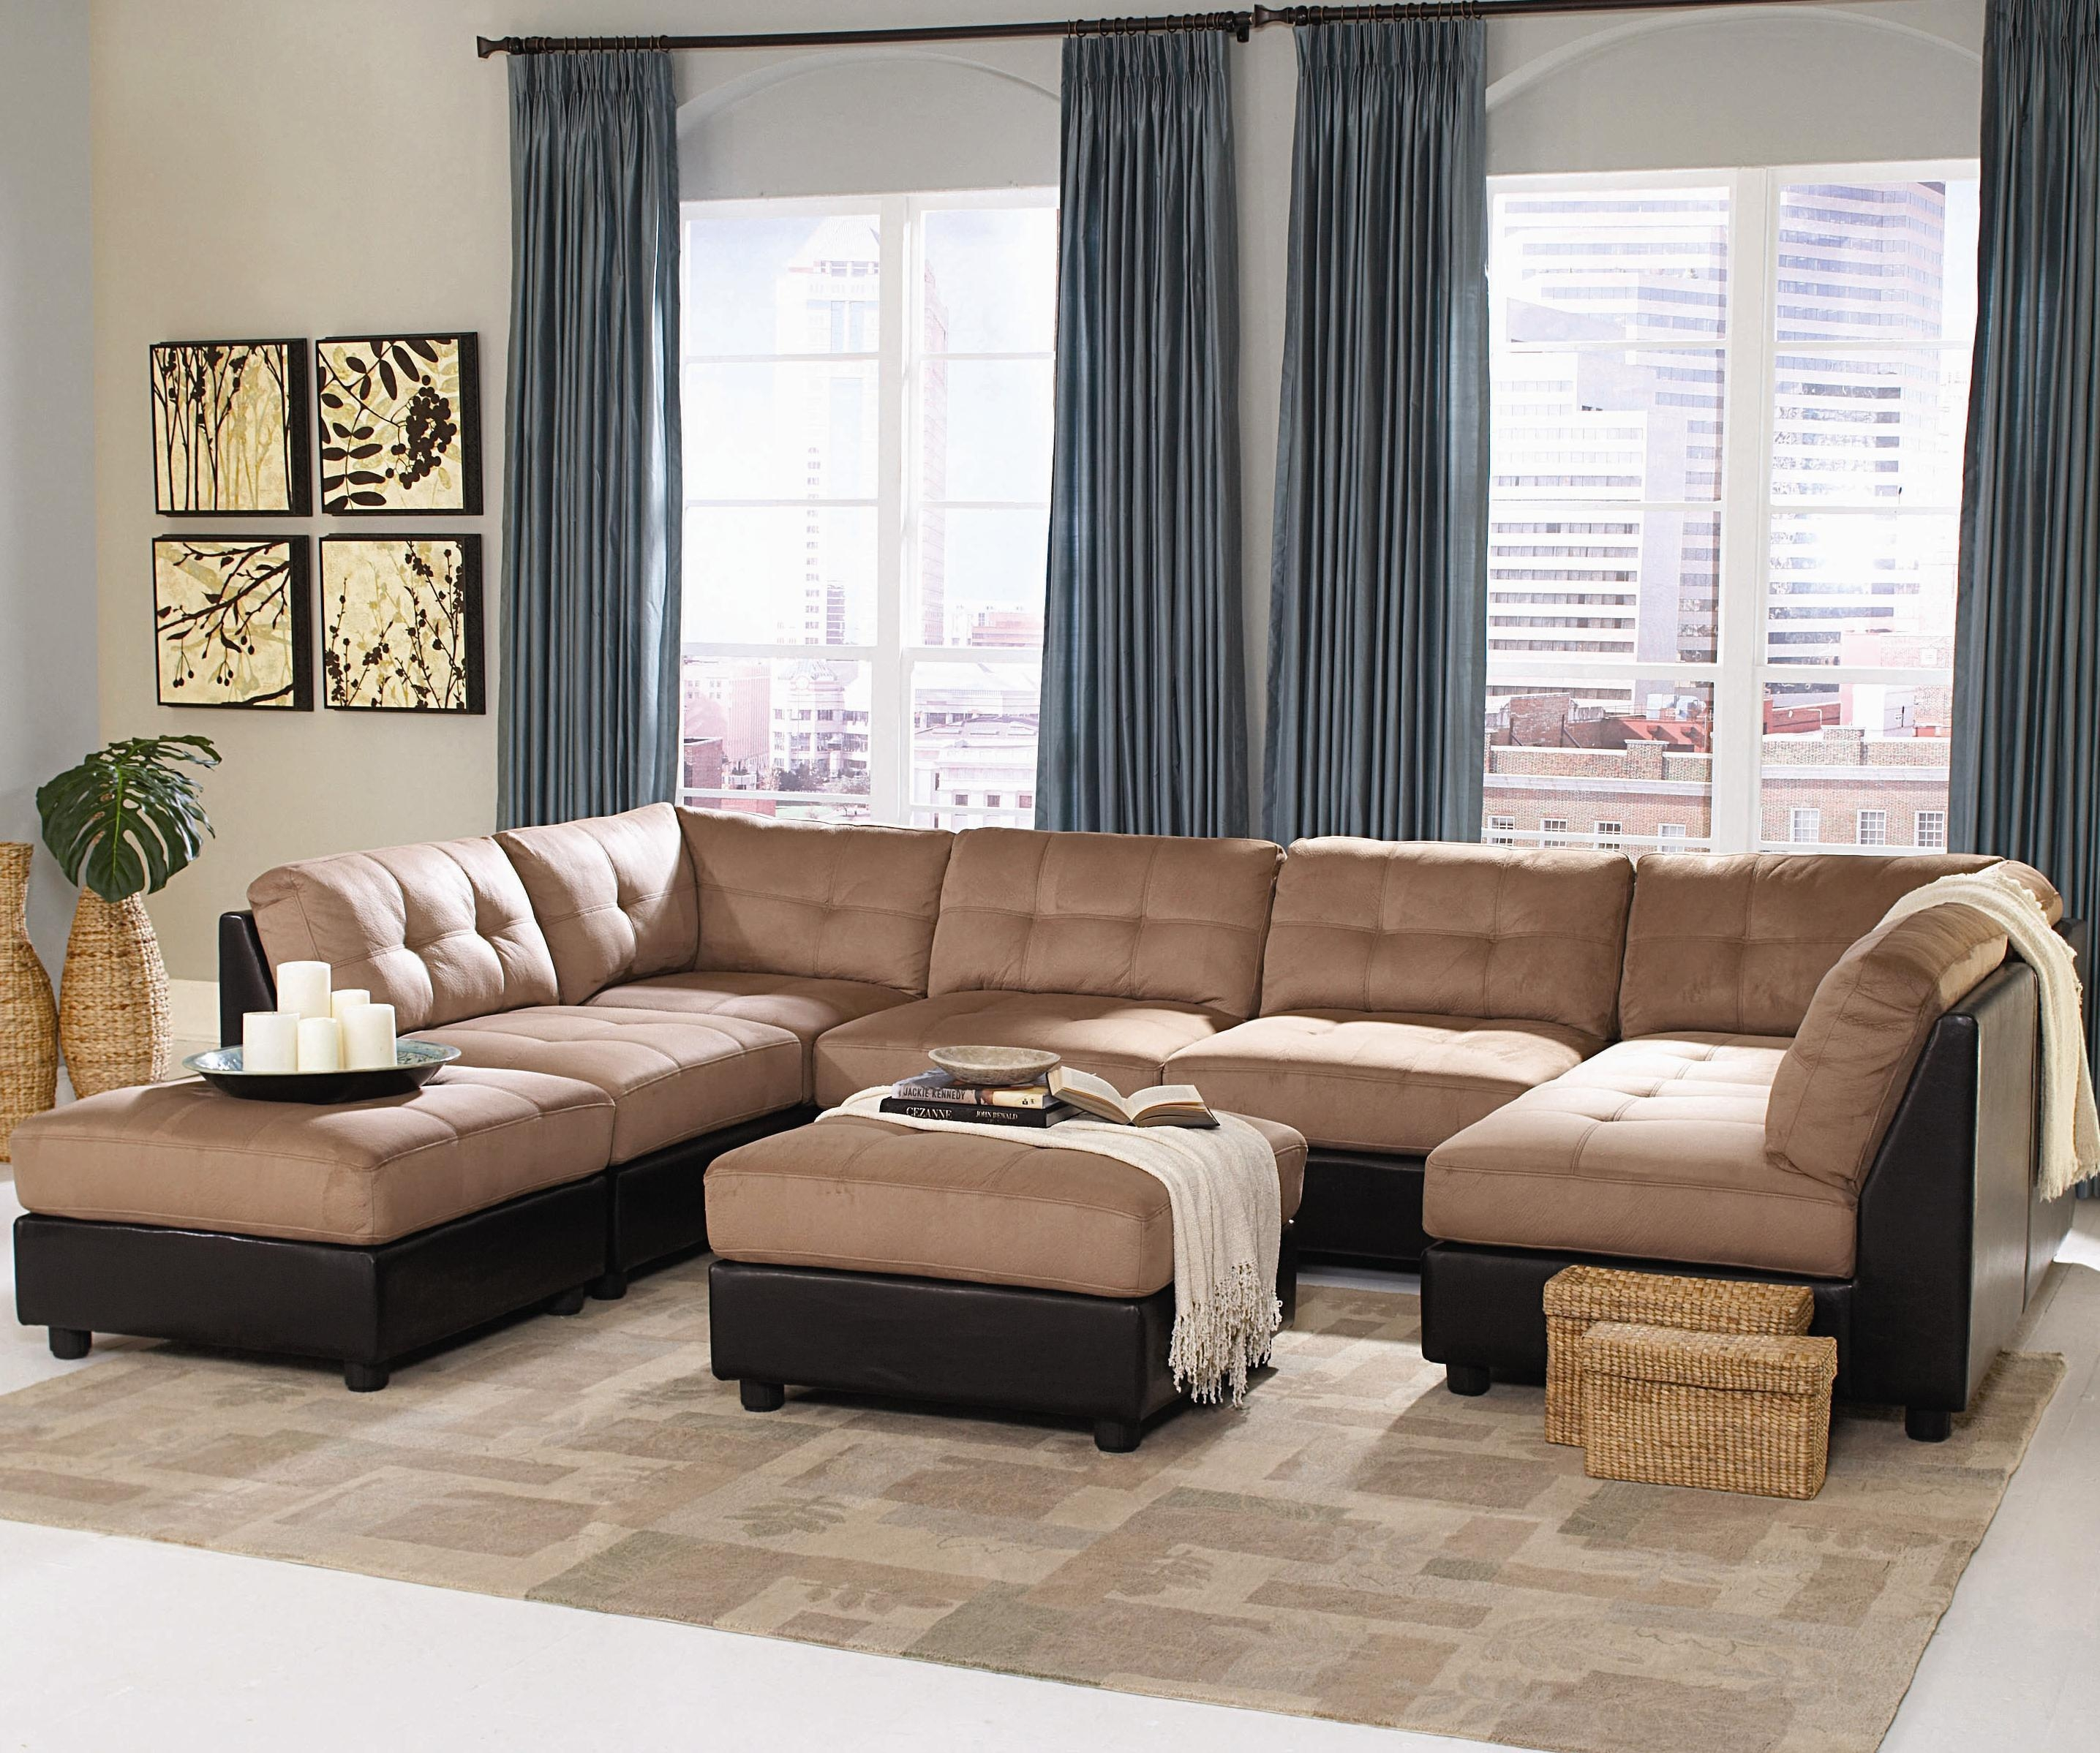 Sofa Set For Drawing Room With Price 20 Top Traditional Sectional Sofas Living Room Furniture